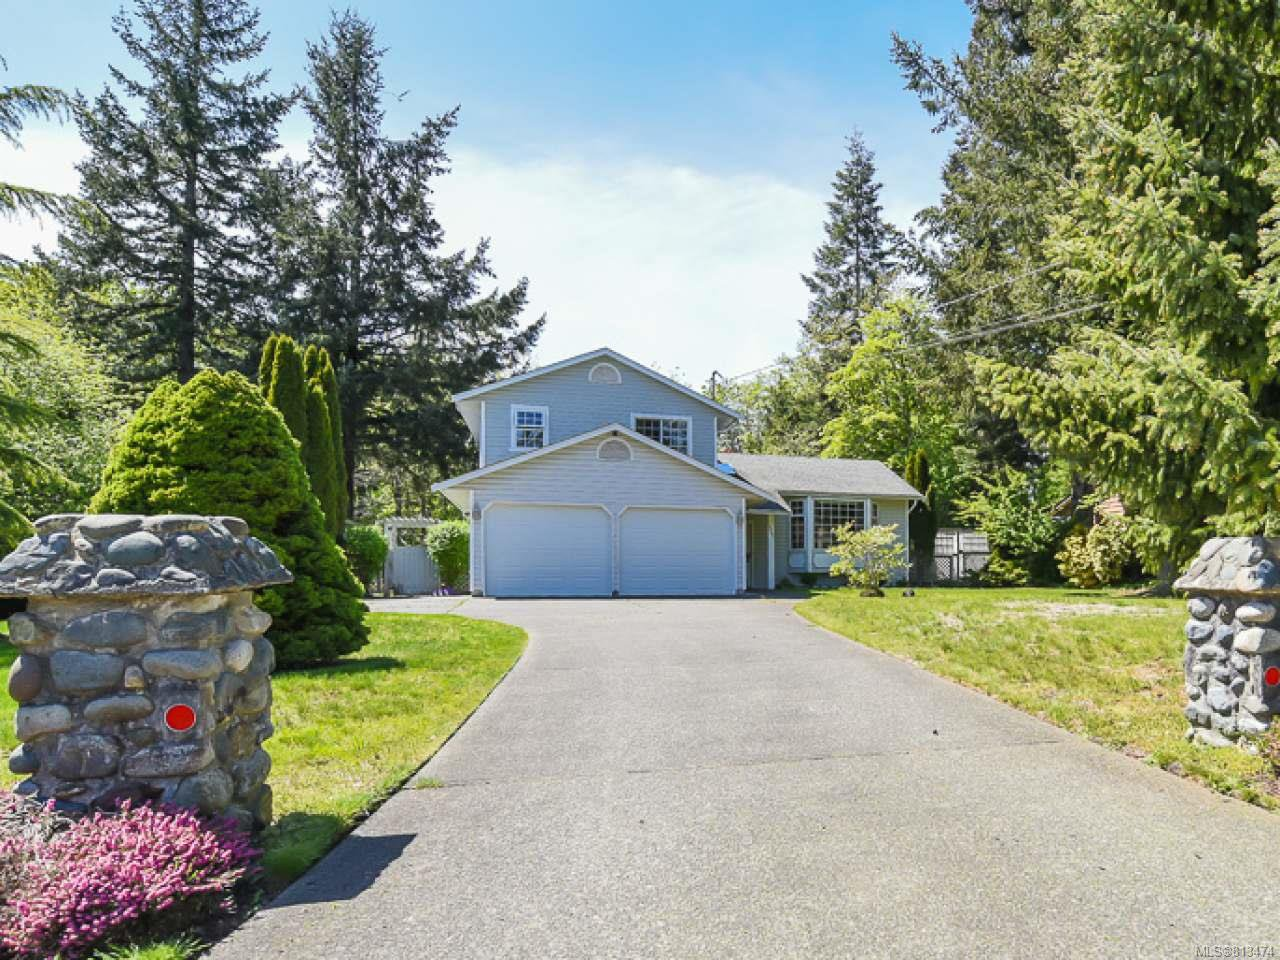 Main Photo: 4807 Alton Pl in COURTENAY: CV Courtenay East House for sale (Comox Valley)  : MLS®# 813474